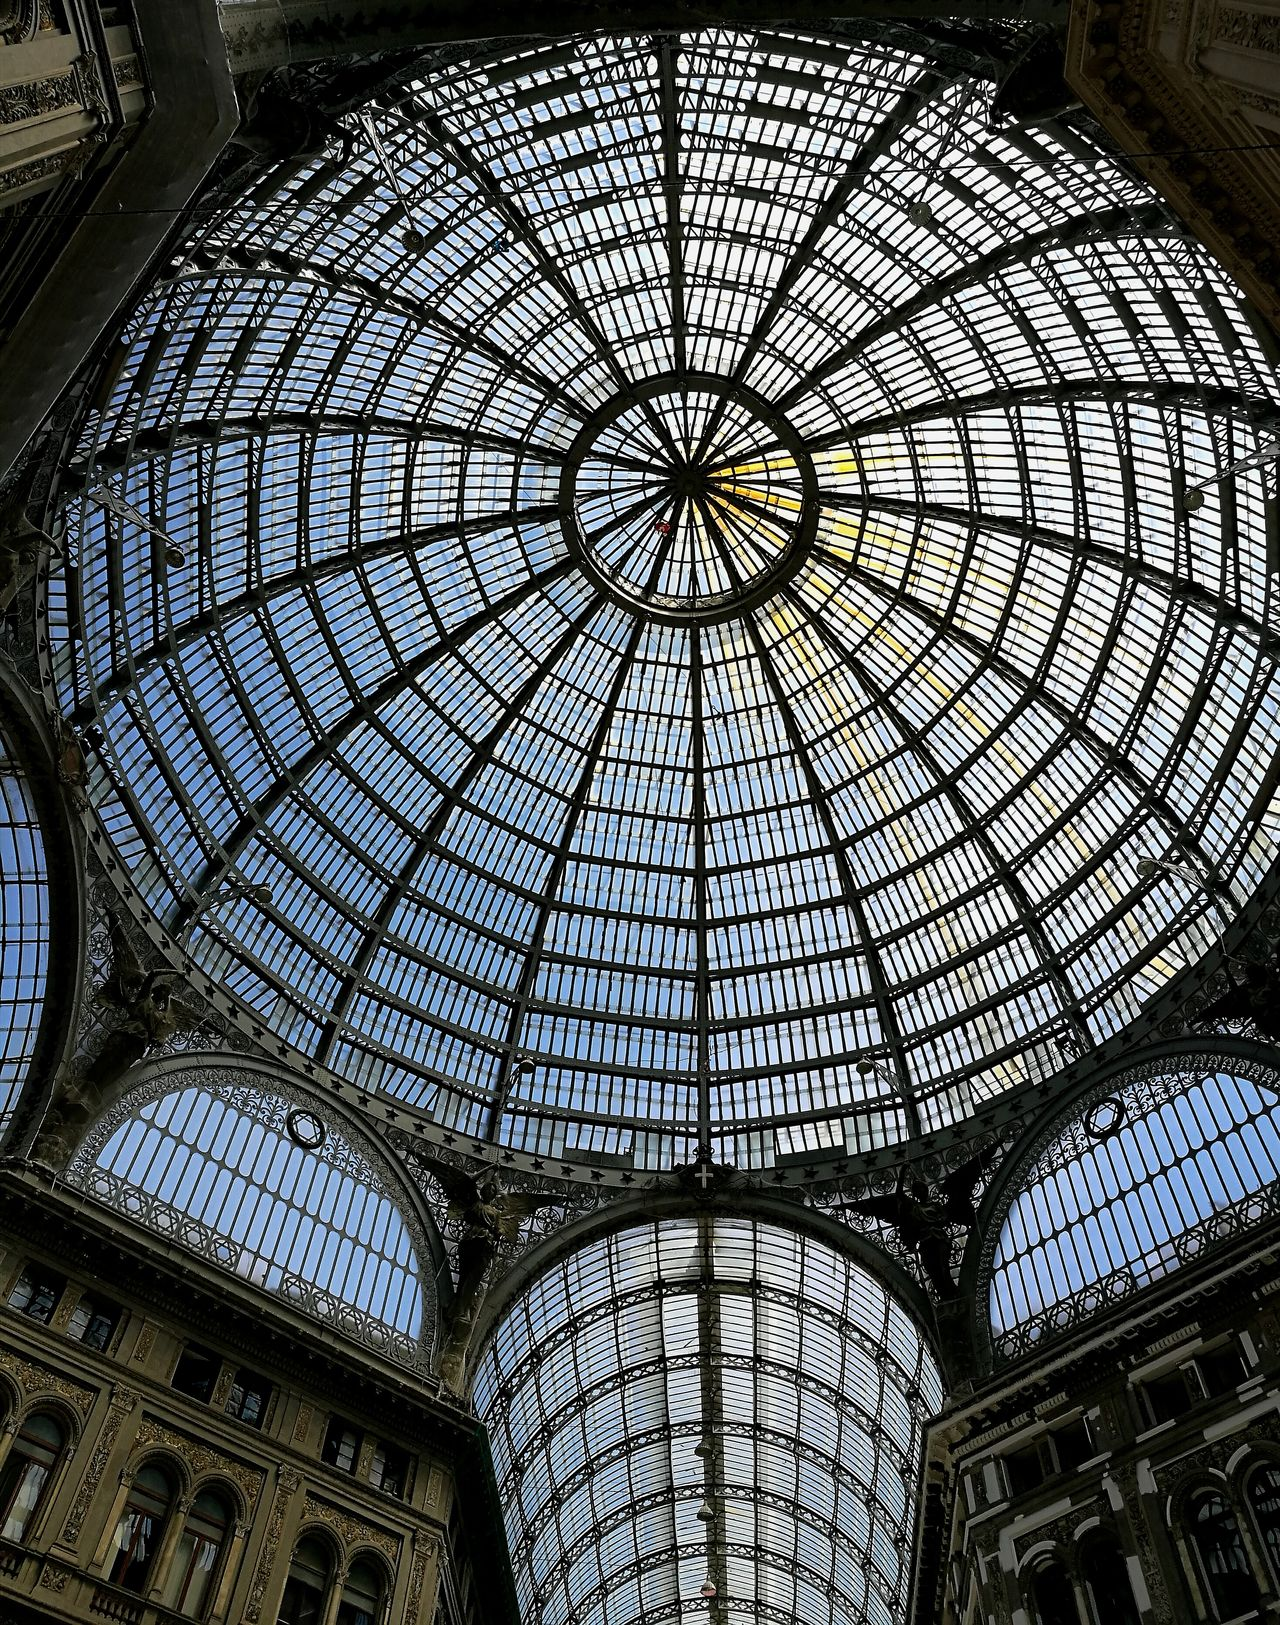 Naples gallery Indoors  Built Structure Architecture Dome Naples, Italy Napoli Naples Travel Destinations